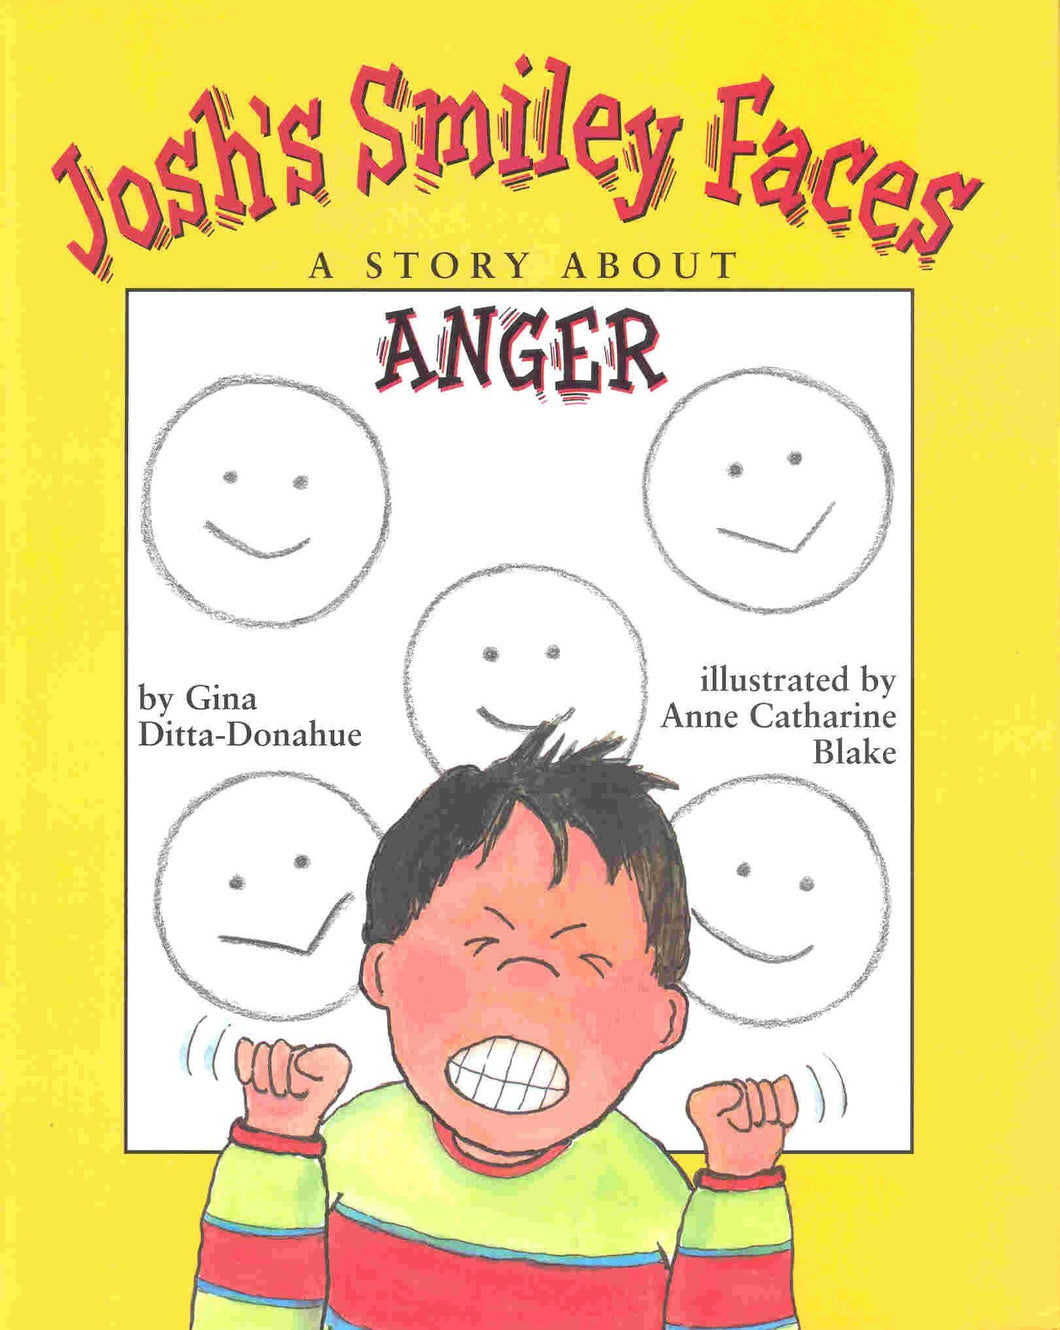 Josh's Smiley Faces: A Story About Anger